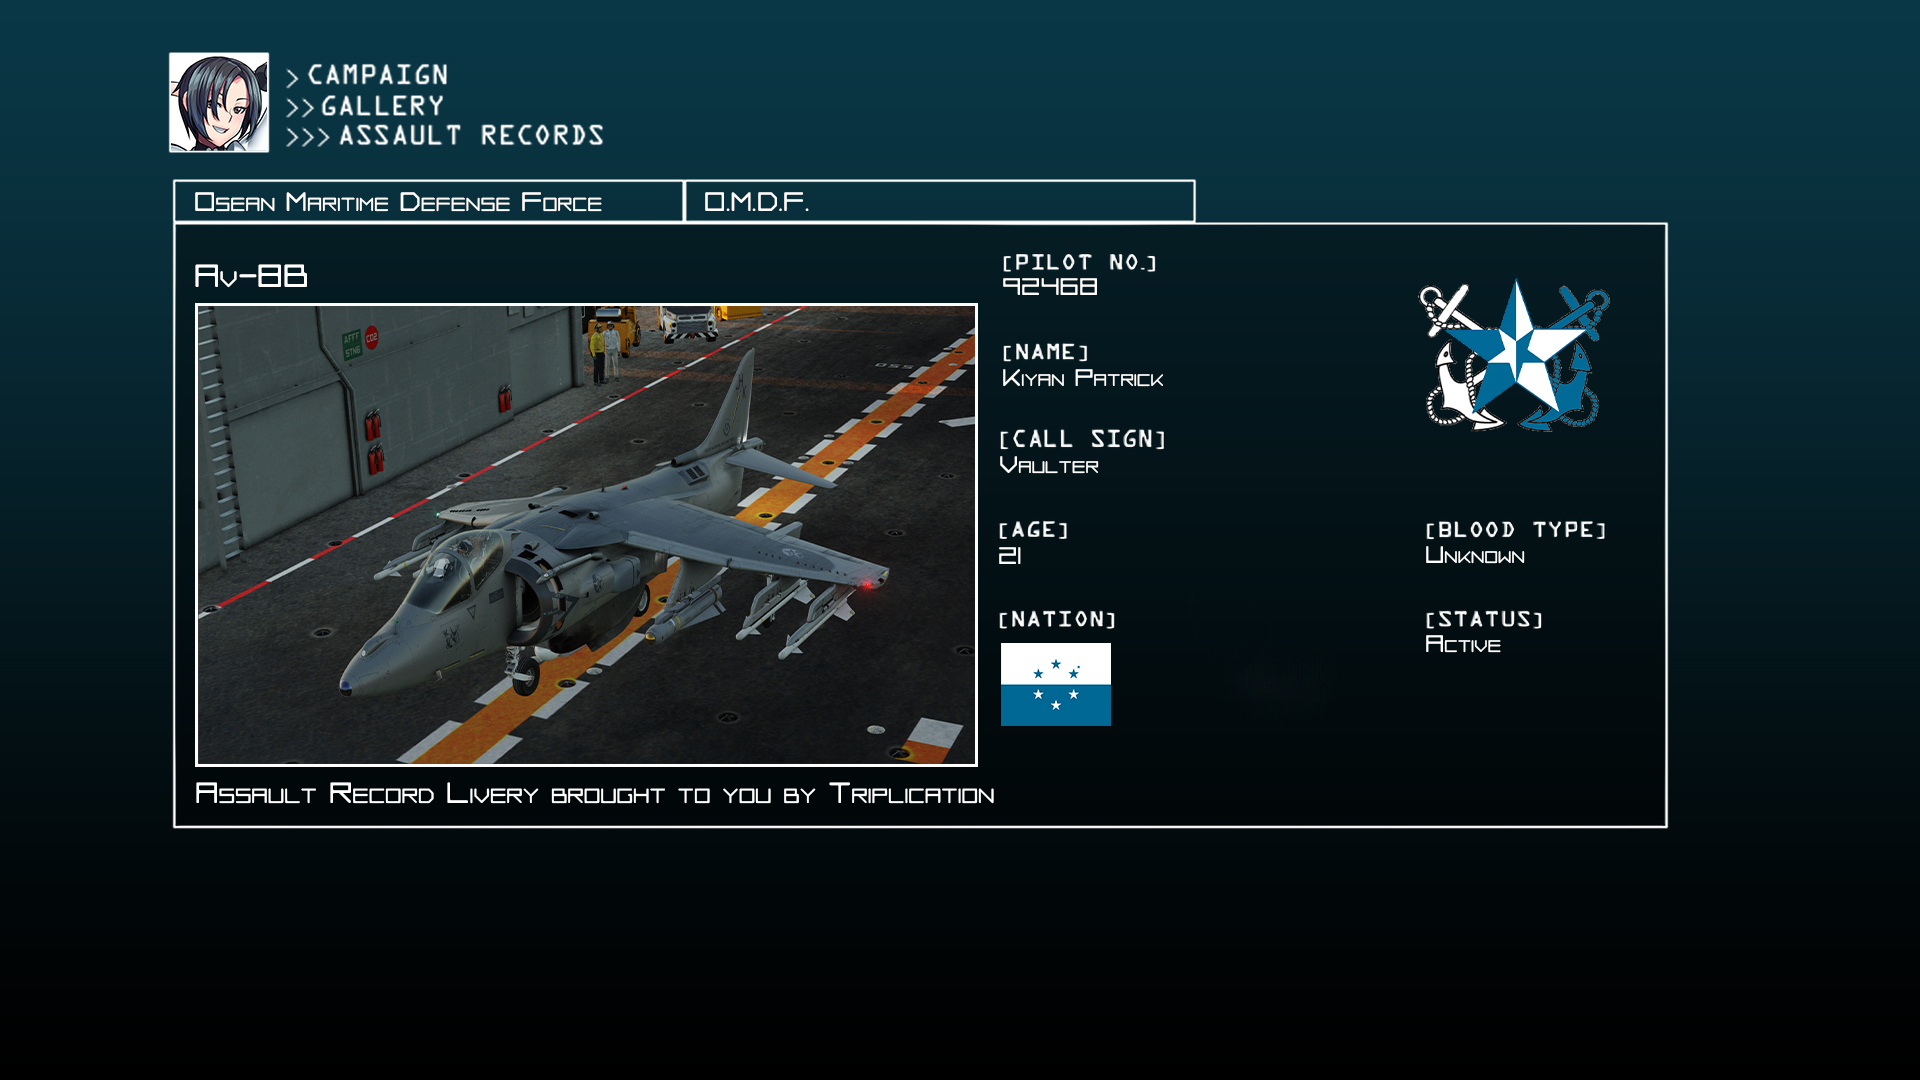 Ace Combat - Av-8B: Osean Maritime Defense Force